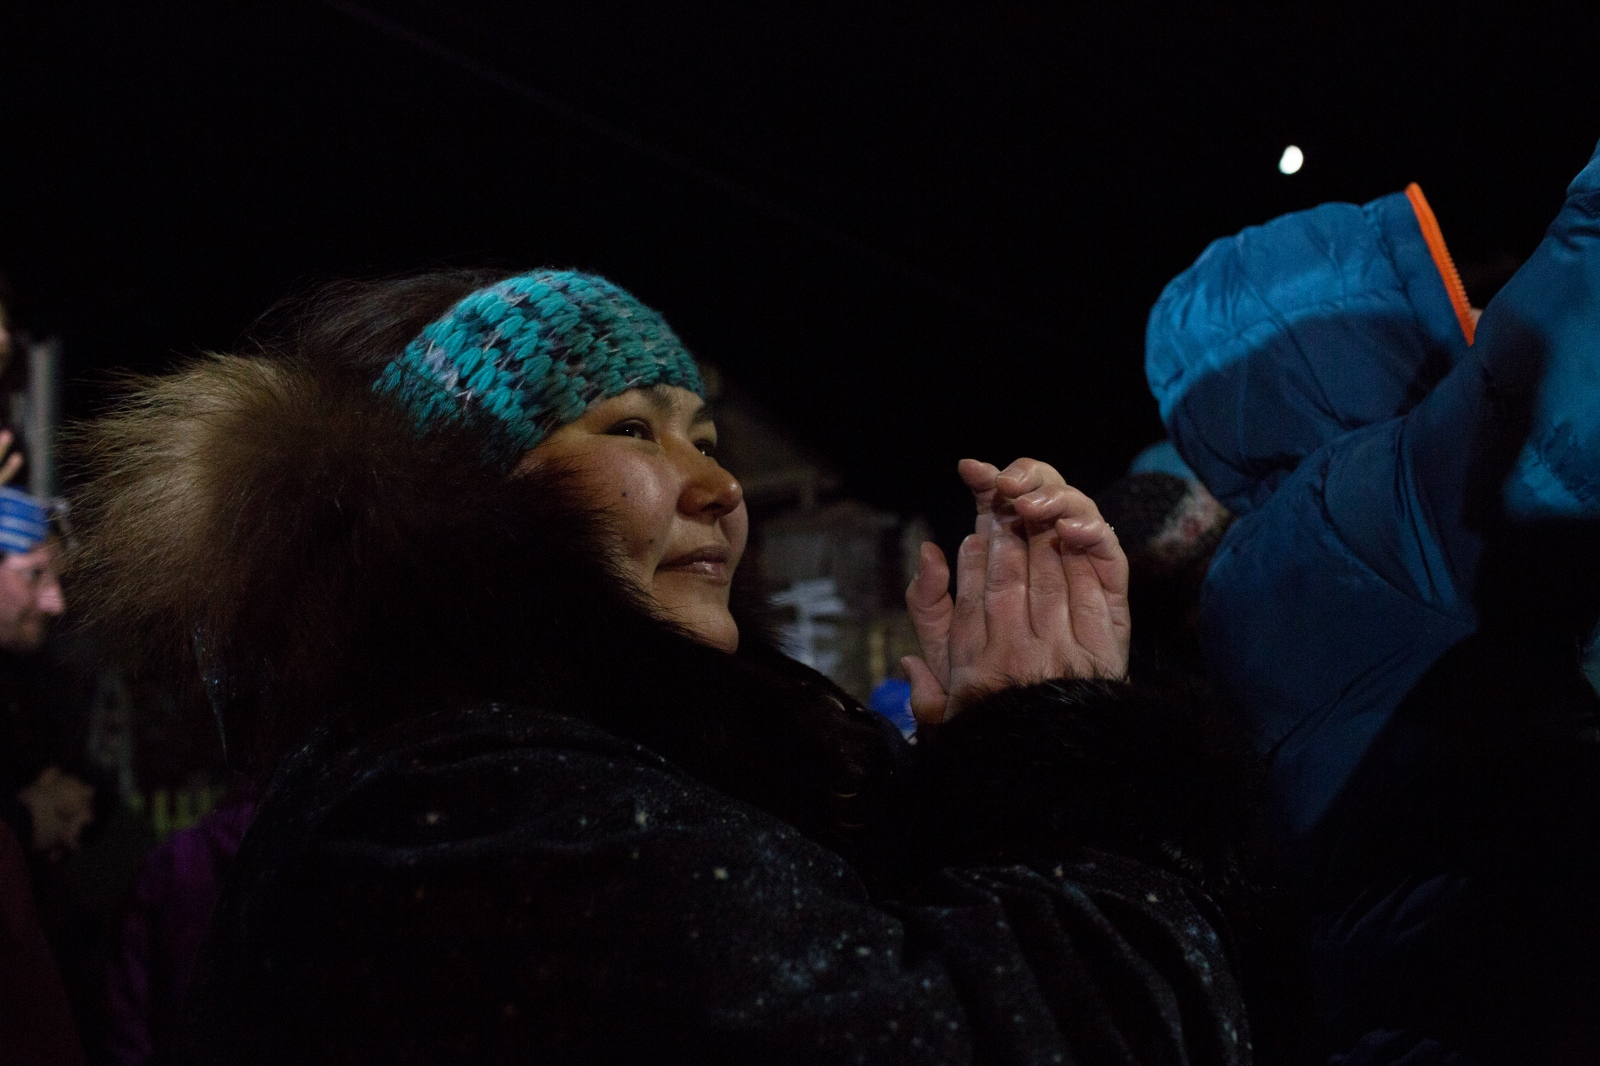 Crowds cheer for Iditarod XLIV champion Dallas Seavey in Nome, Alaska in the early morning hours of March 15, 2016.